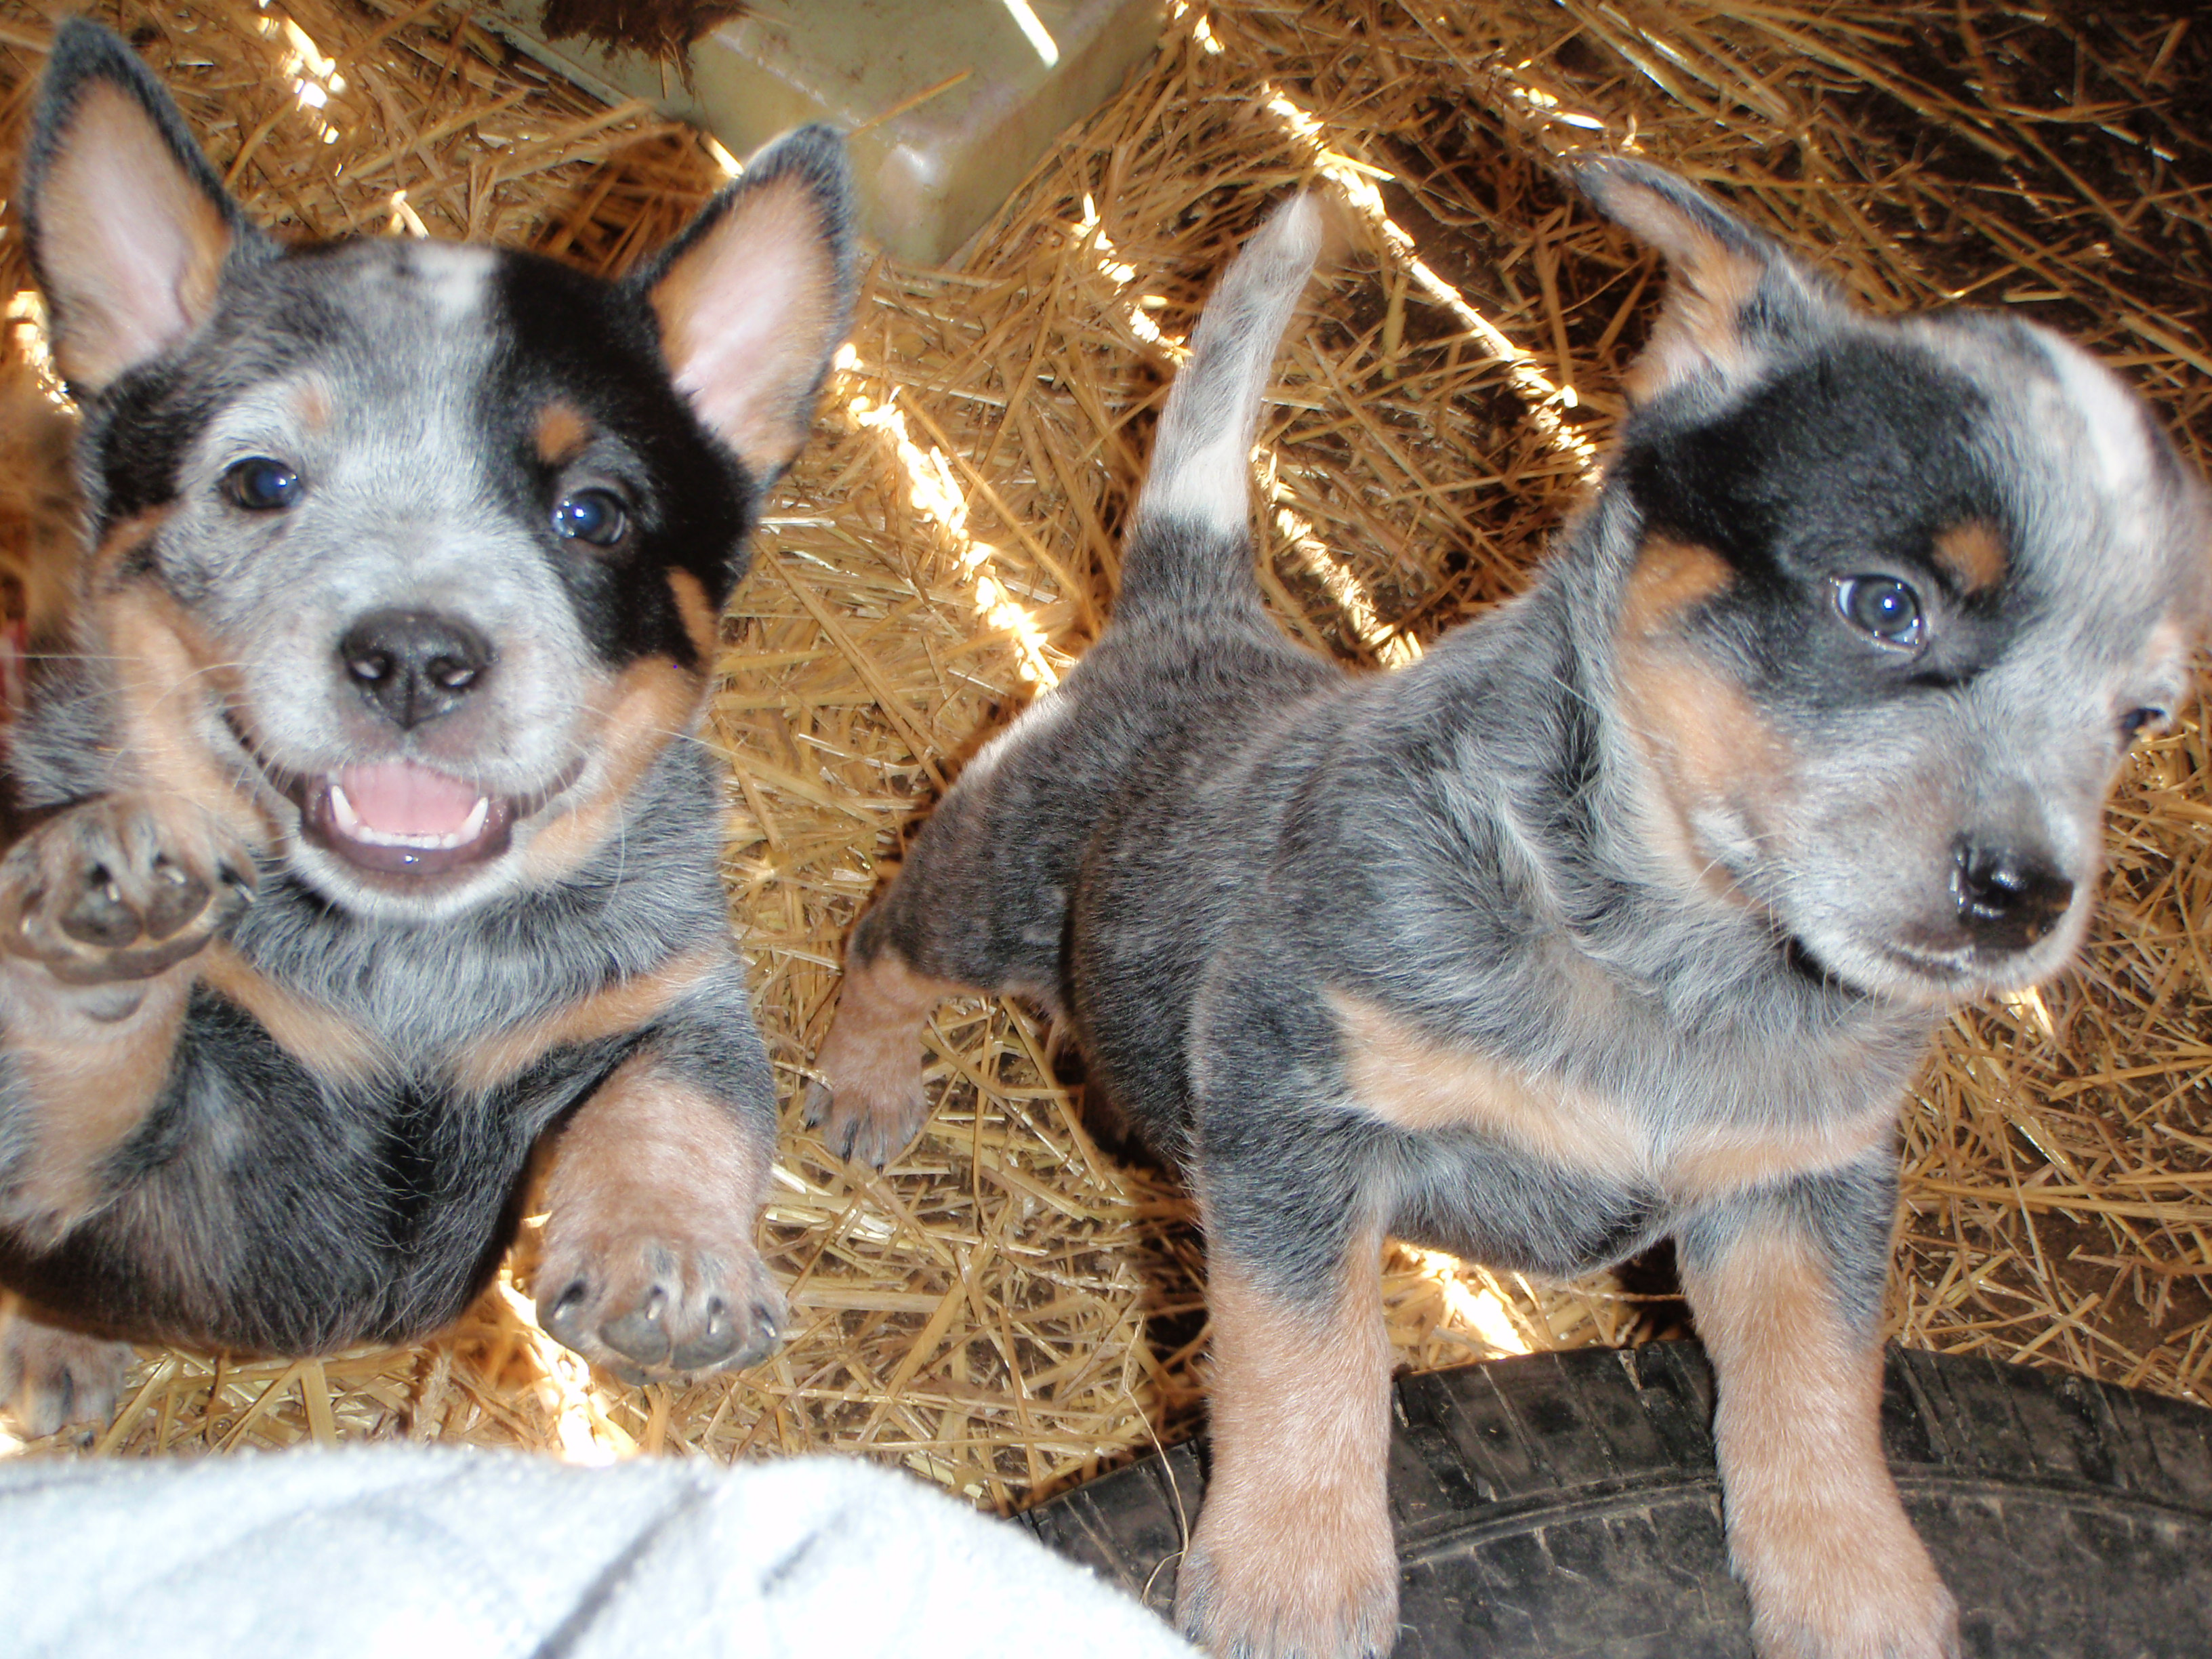 Australian Cattle Dog Breeds with Dogs for Sale in MO